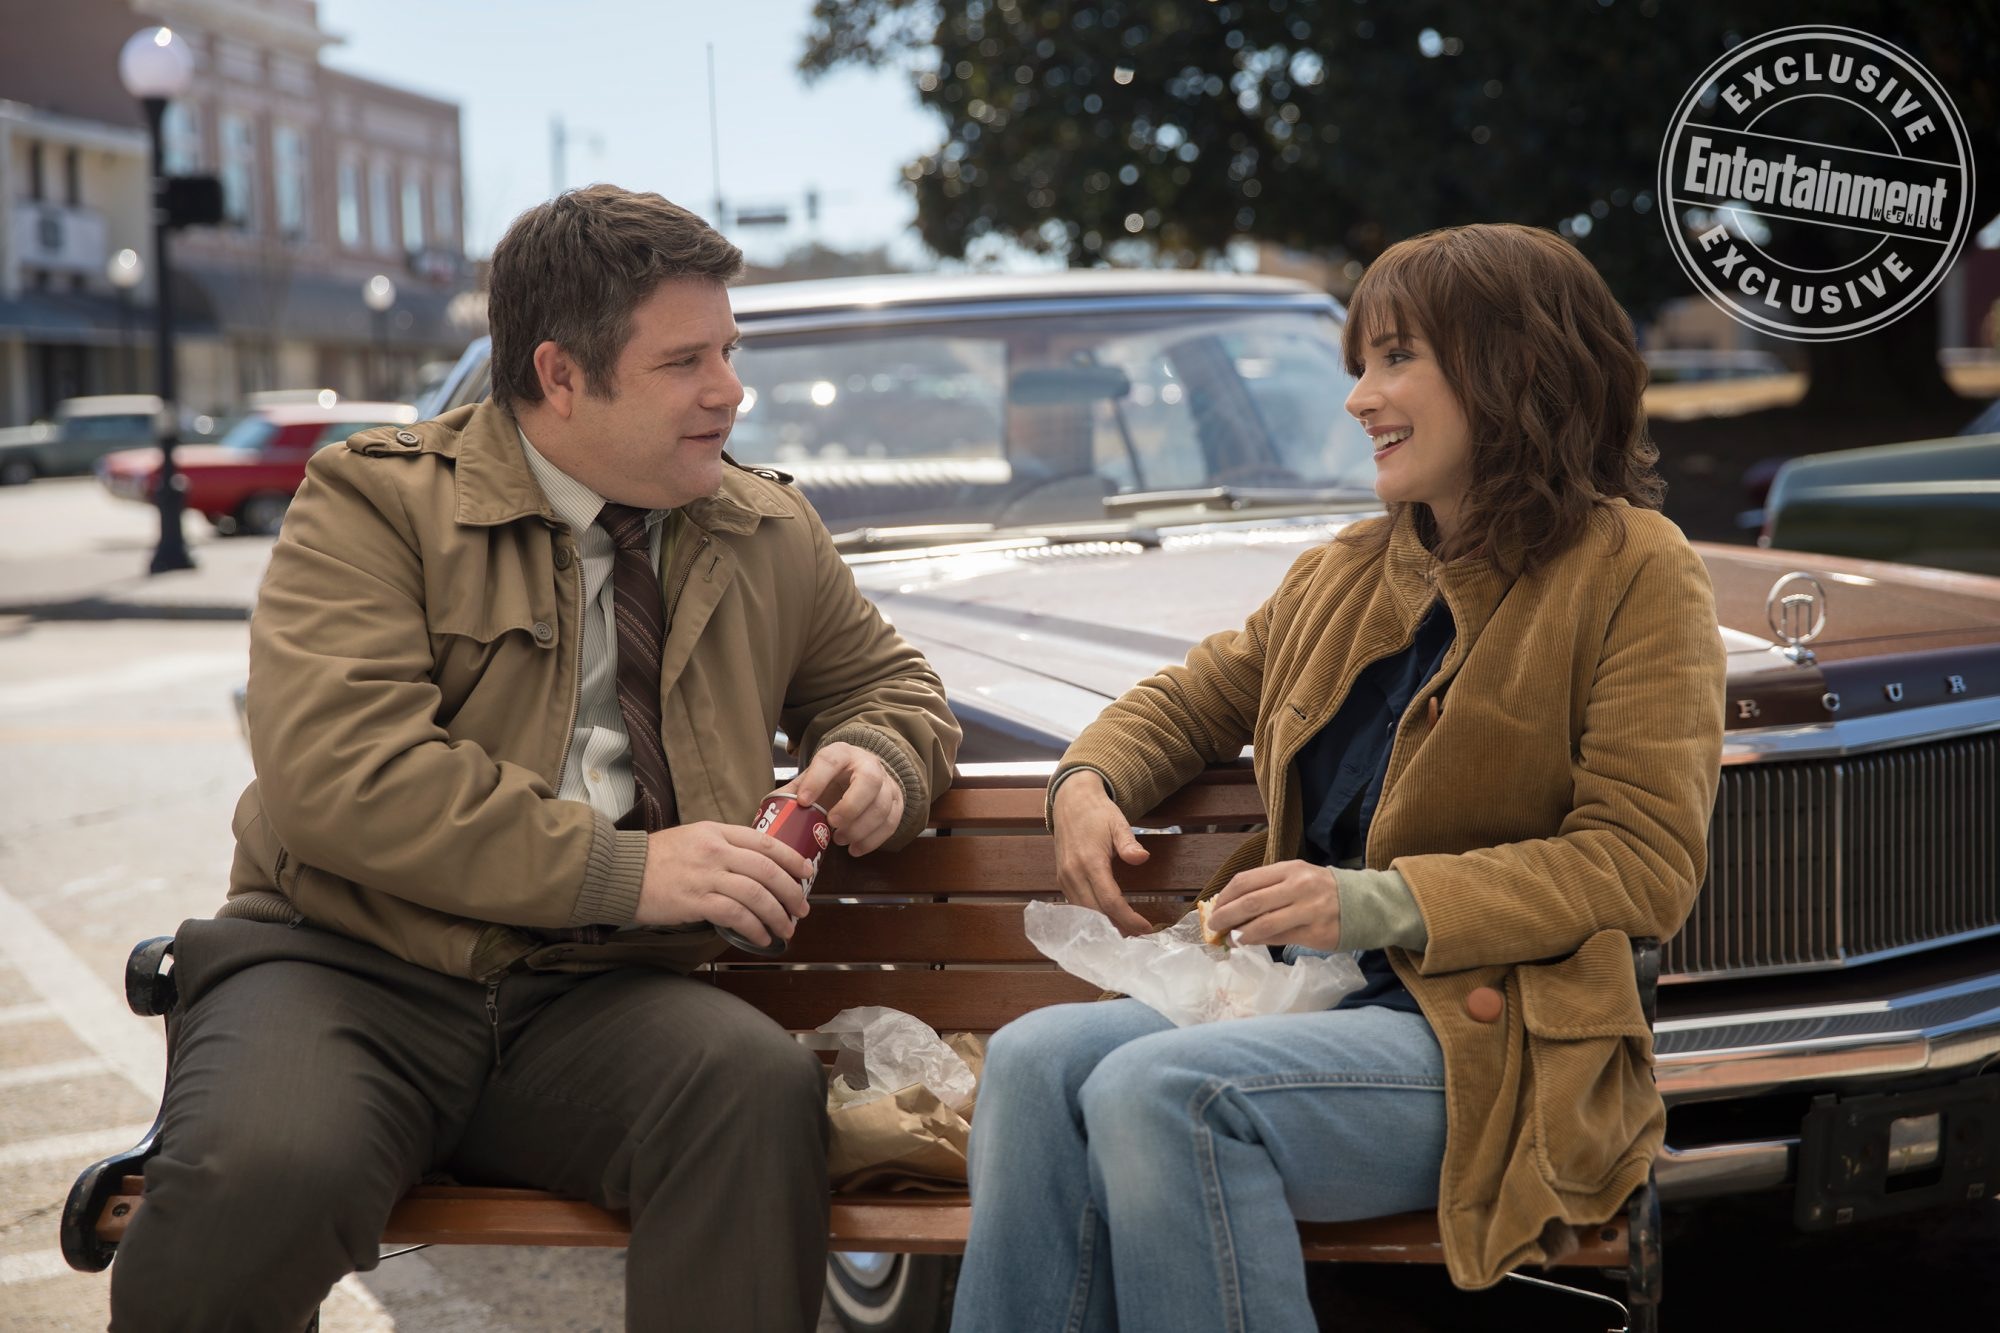 Sean Astin as Bob Newby and Winona Ryder as Joyce Byers